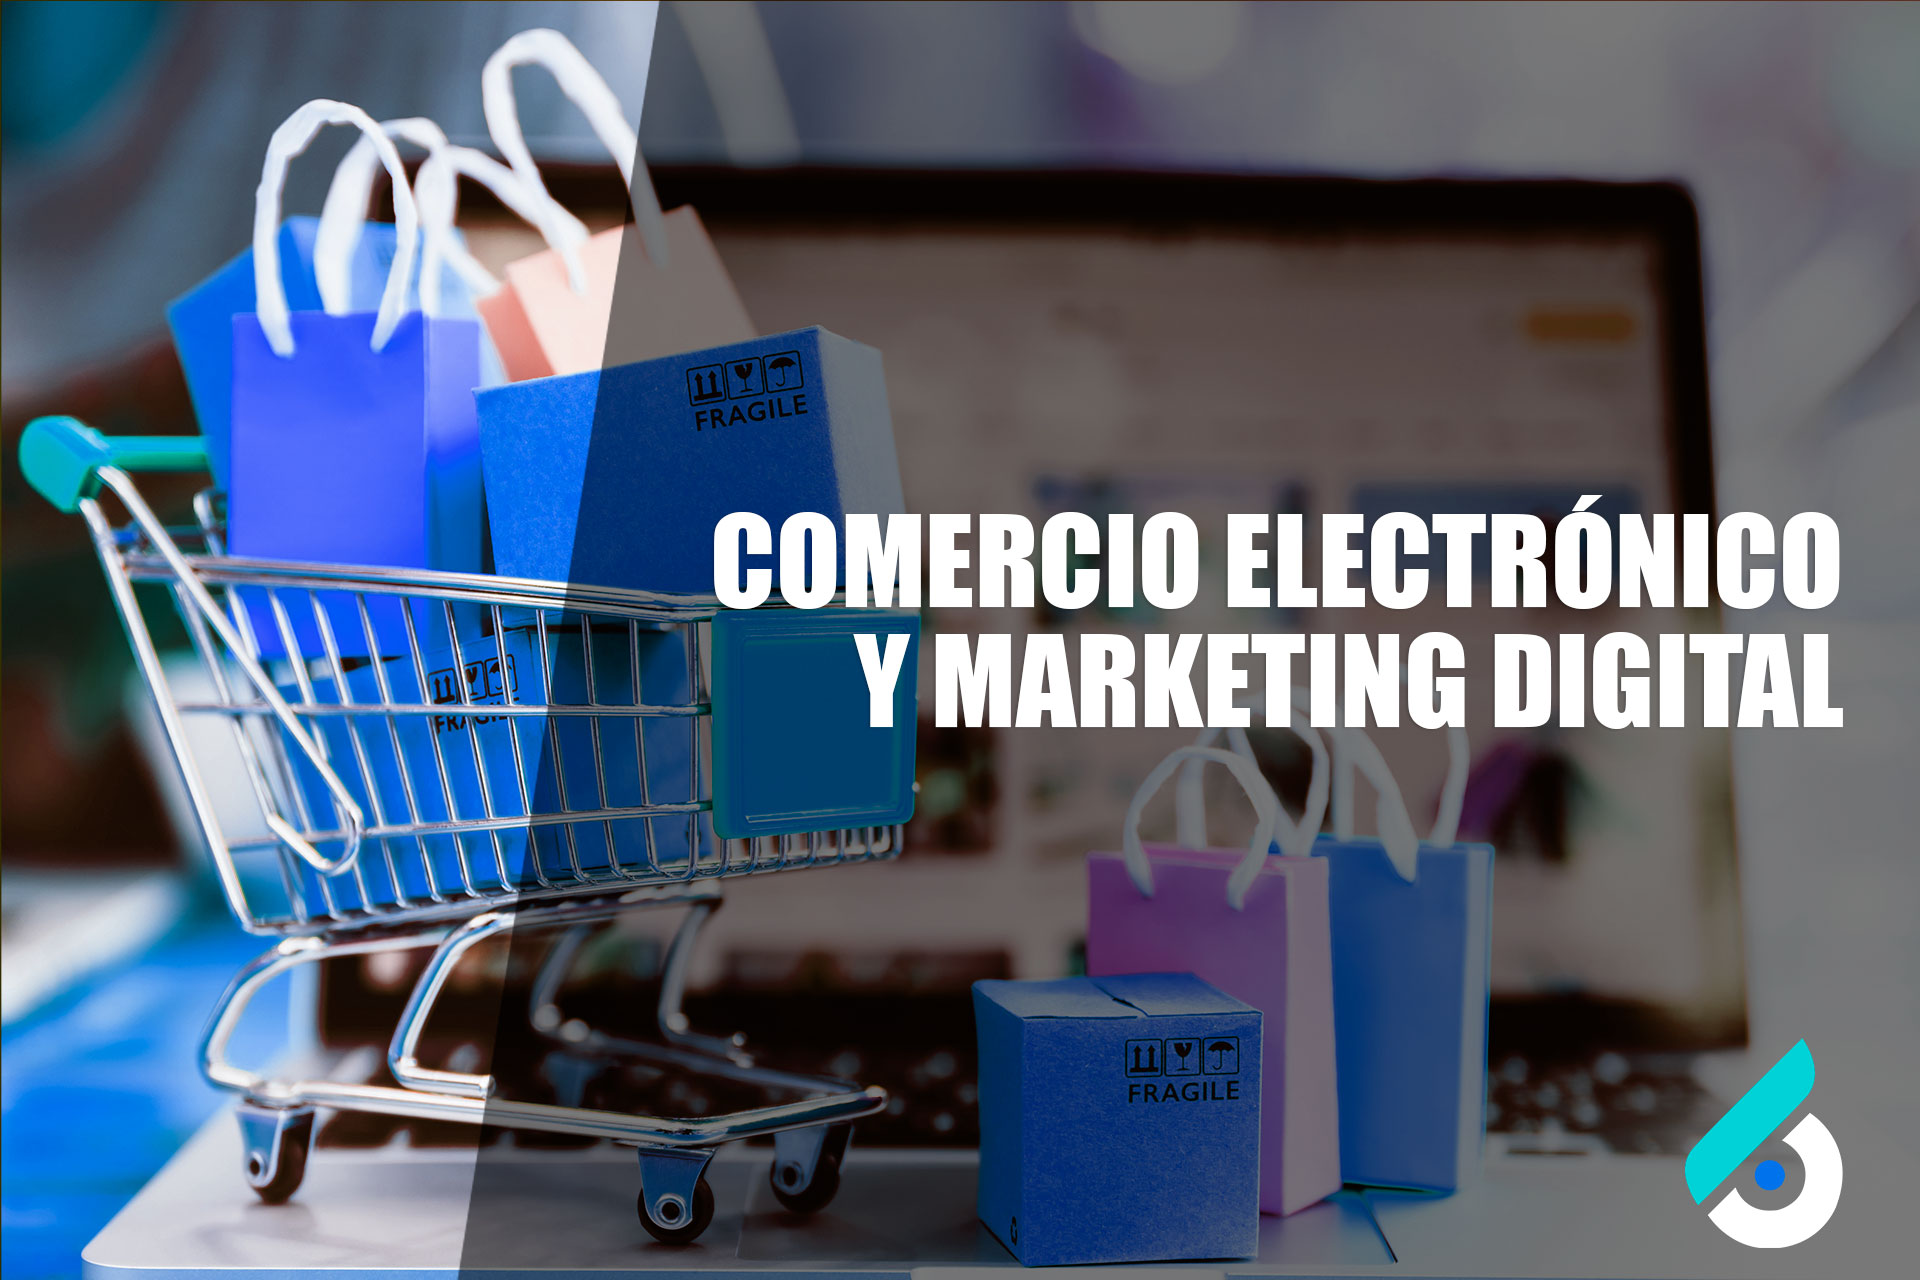 DMIPE-20-01-13-0416-2 | Comercio Electrónico y Marketing Digital